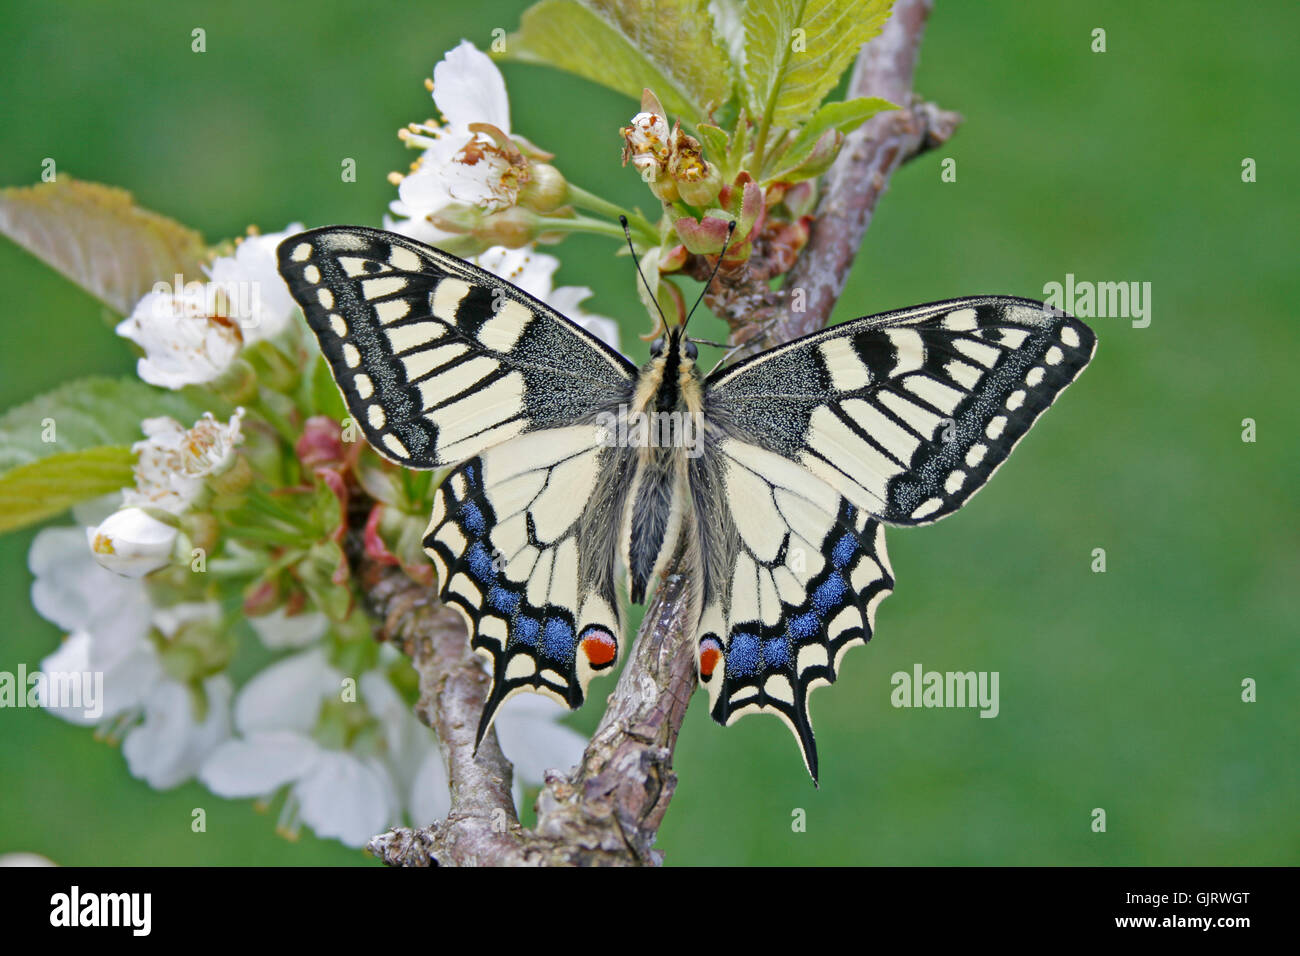 butterfly swallowtail familiy - Stock Image